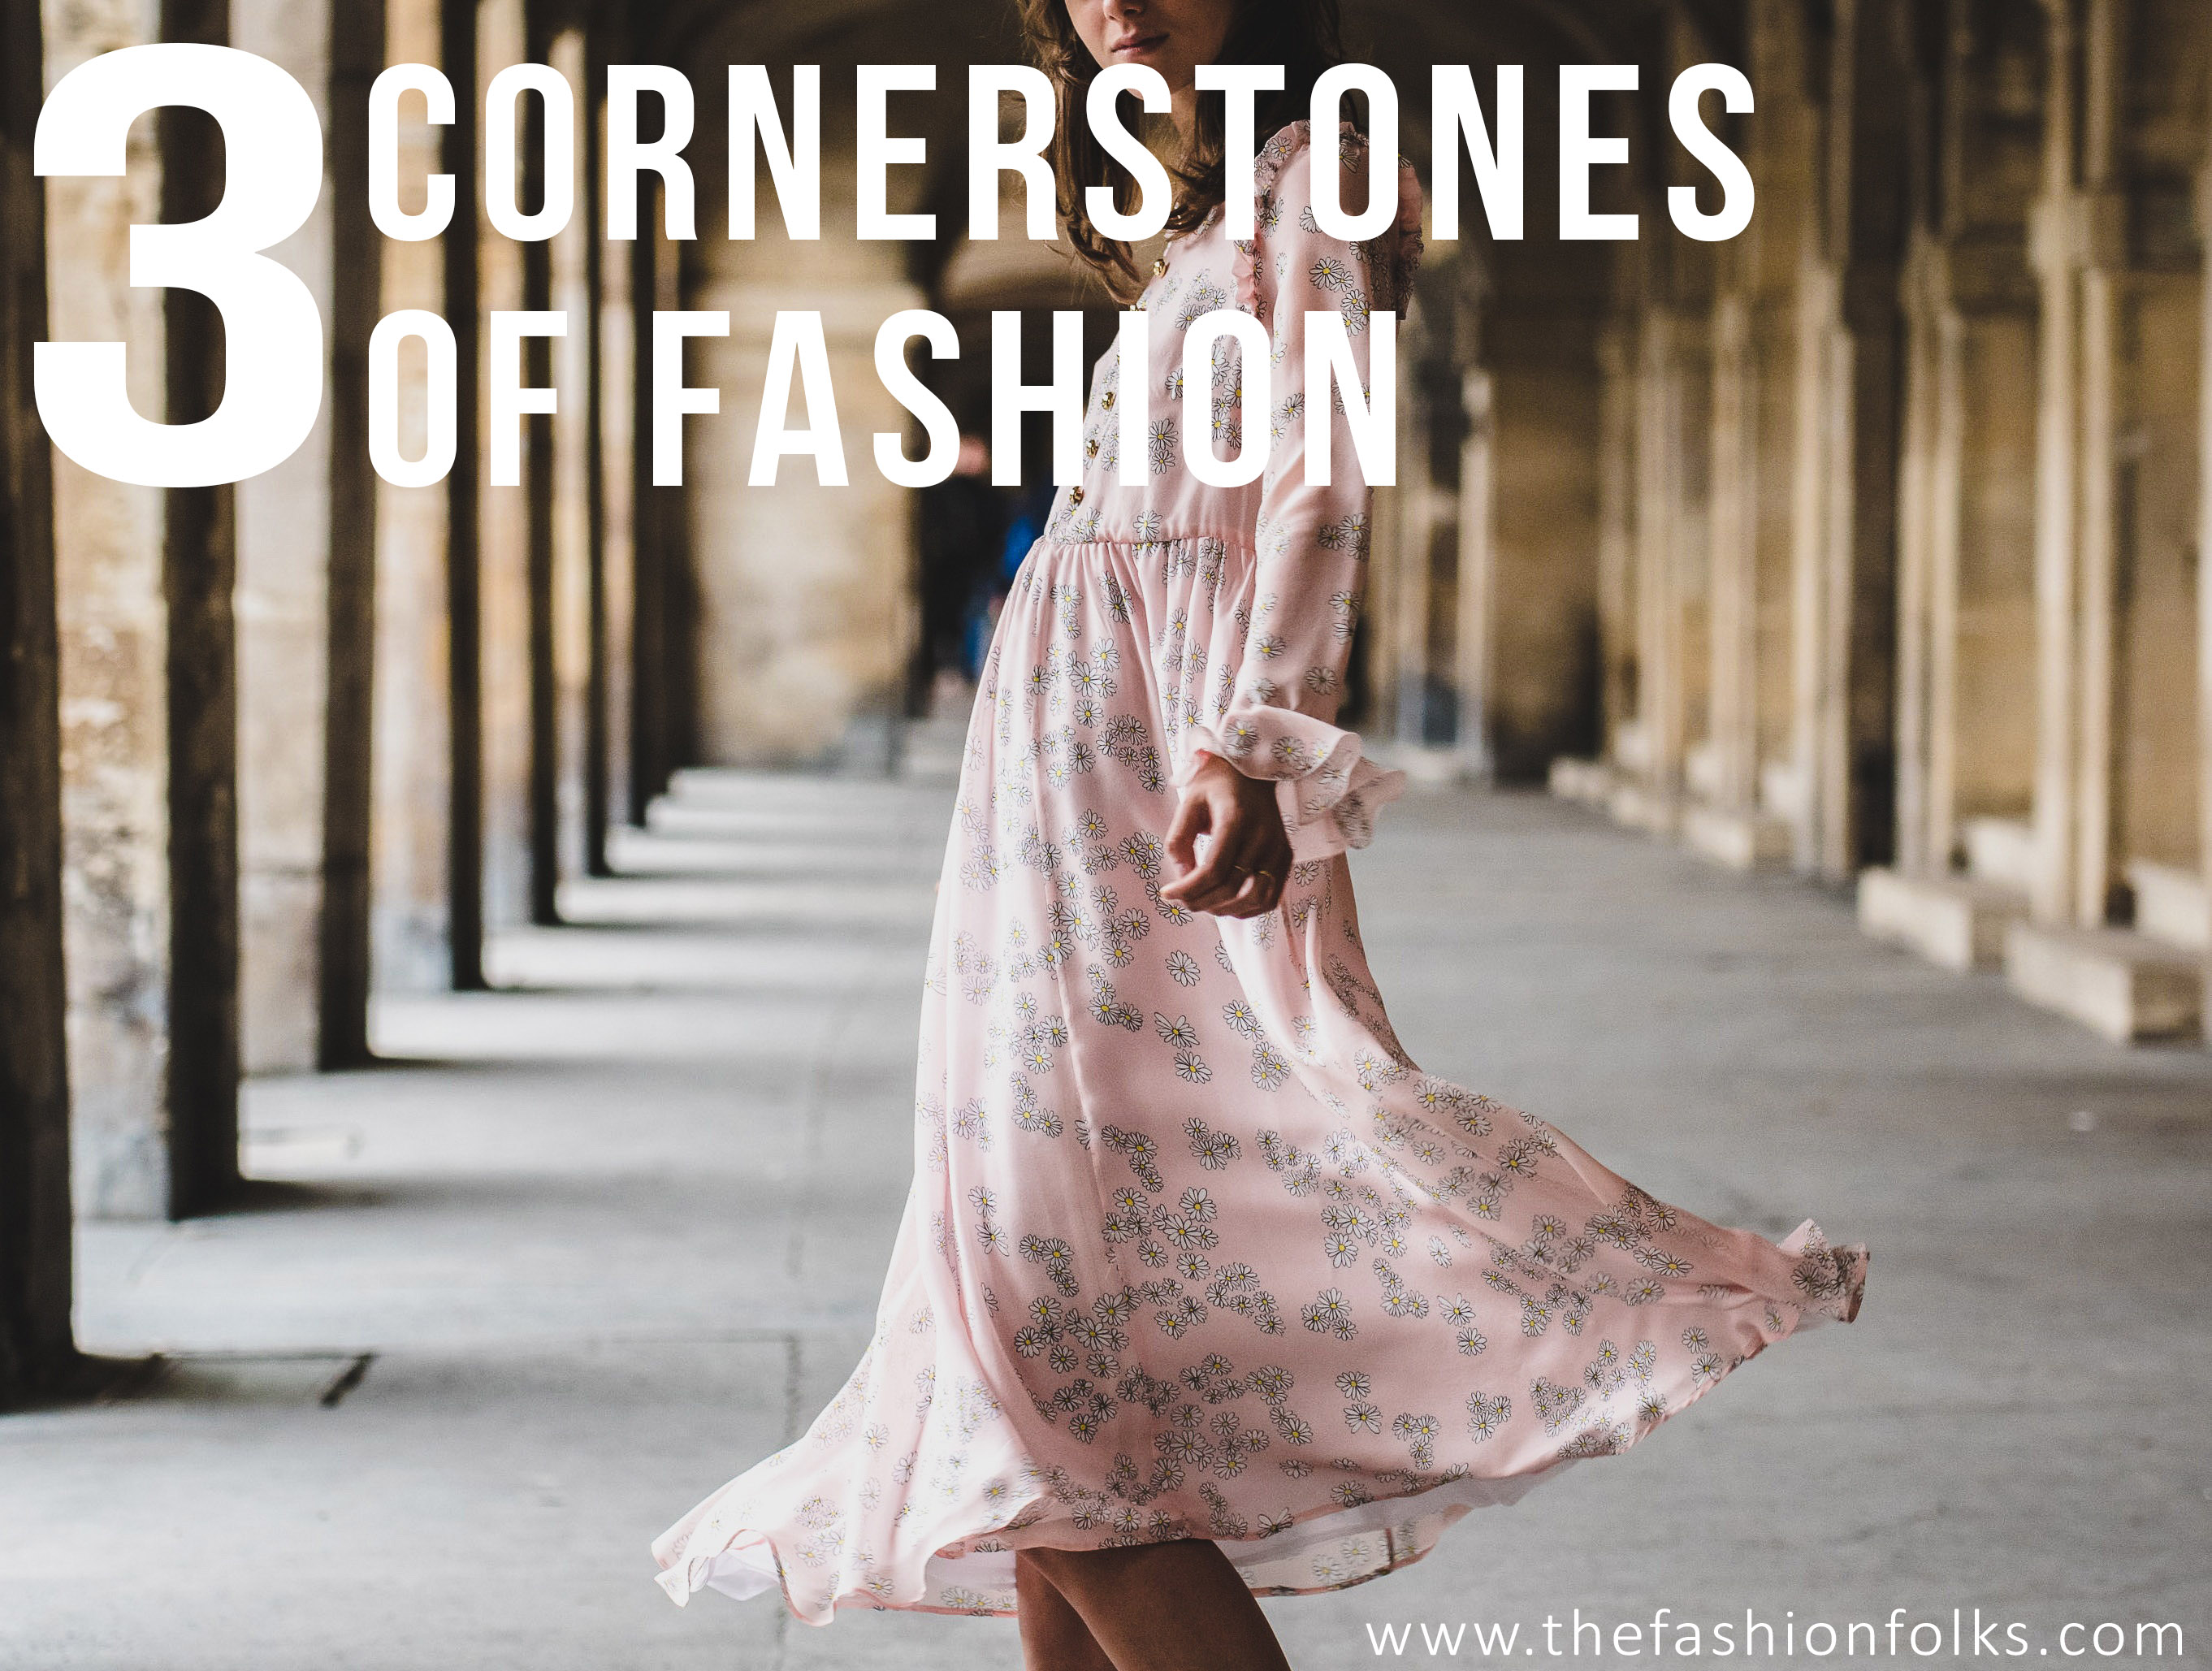 Three Cornerstons of Fashion | The Fashion Folks